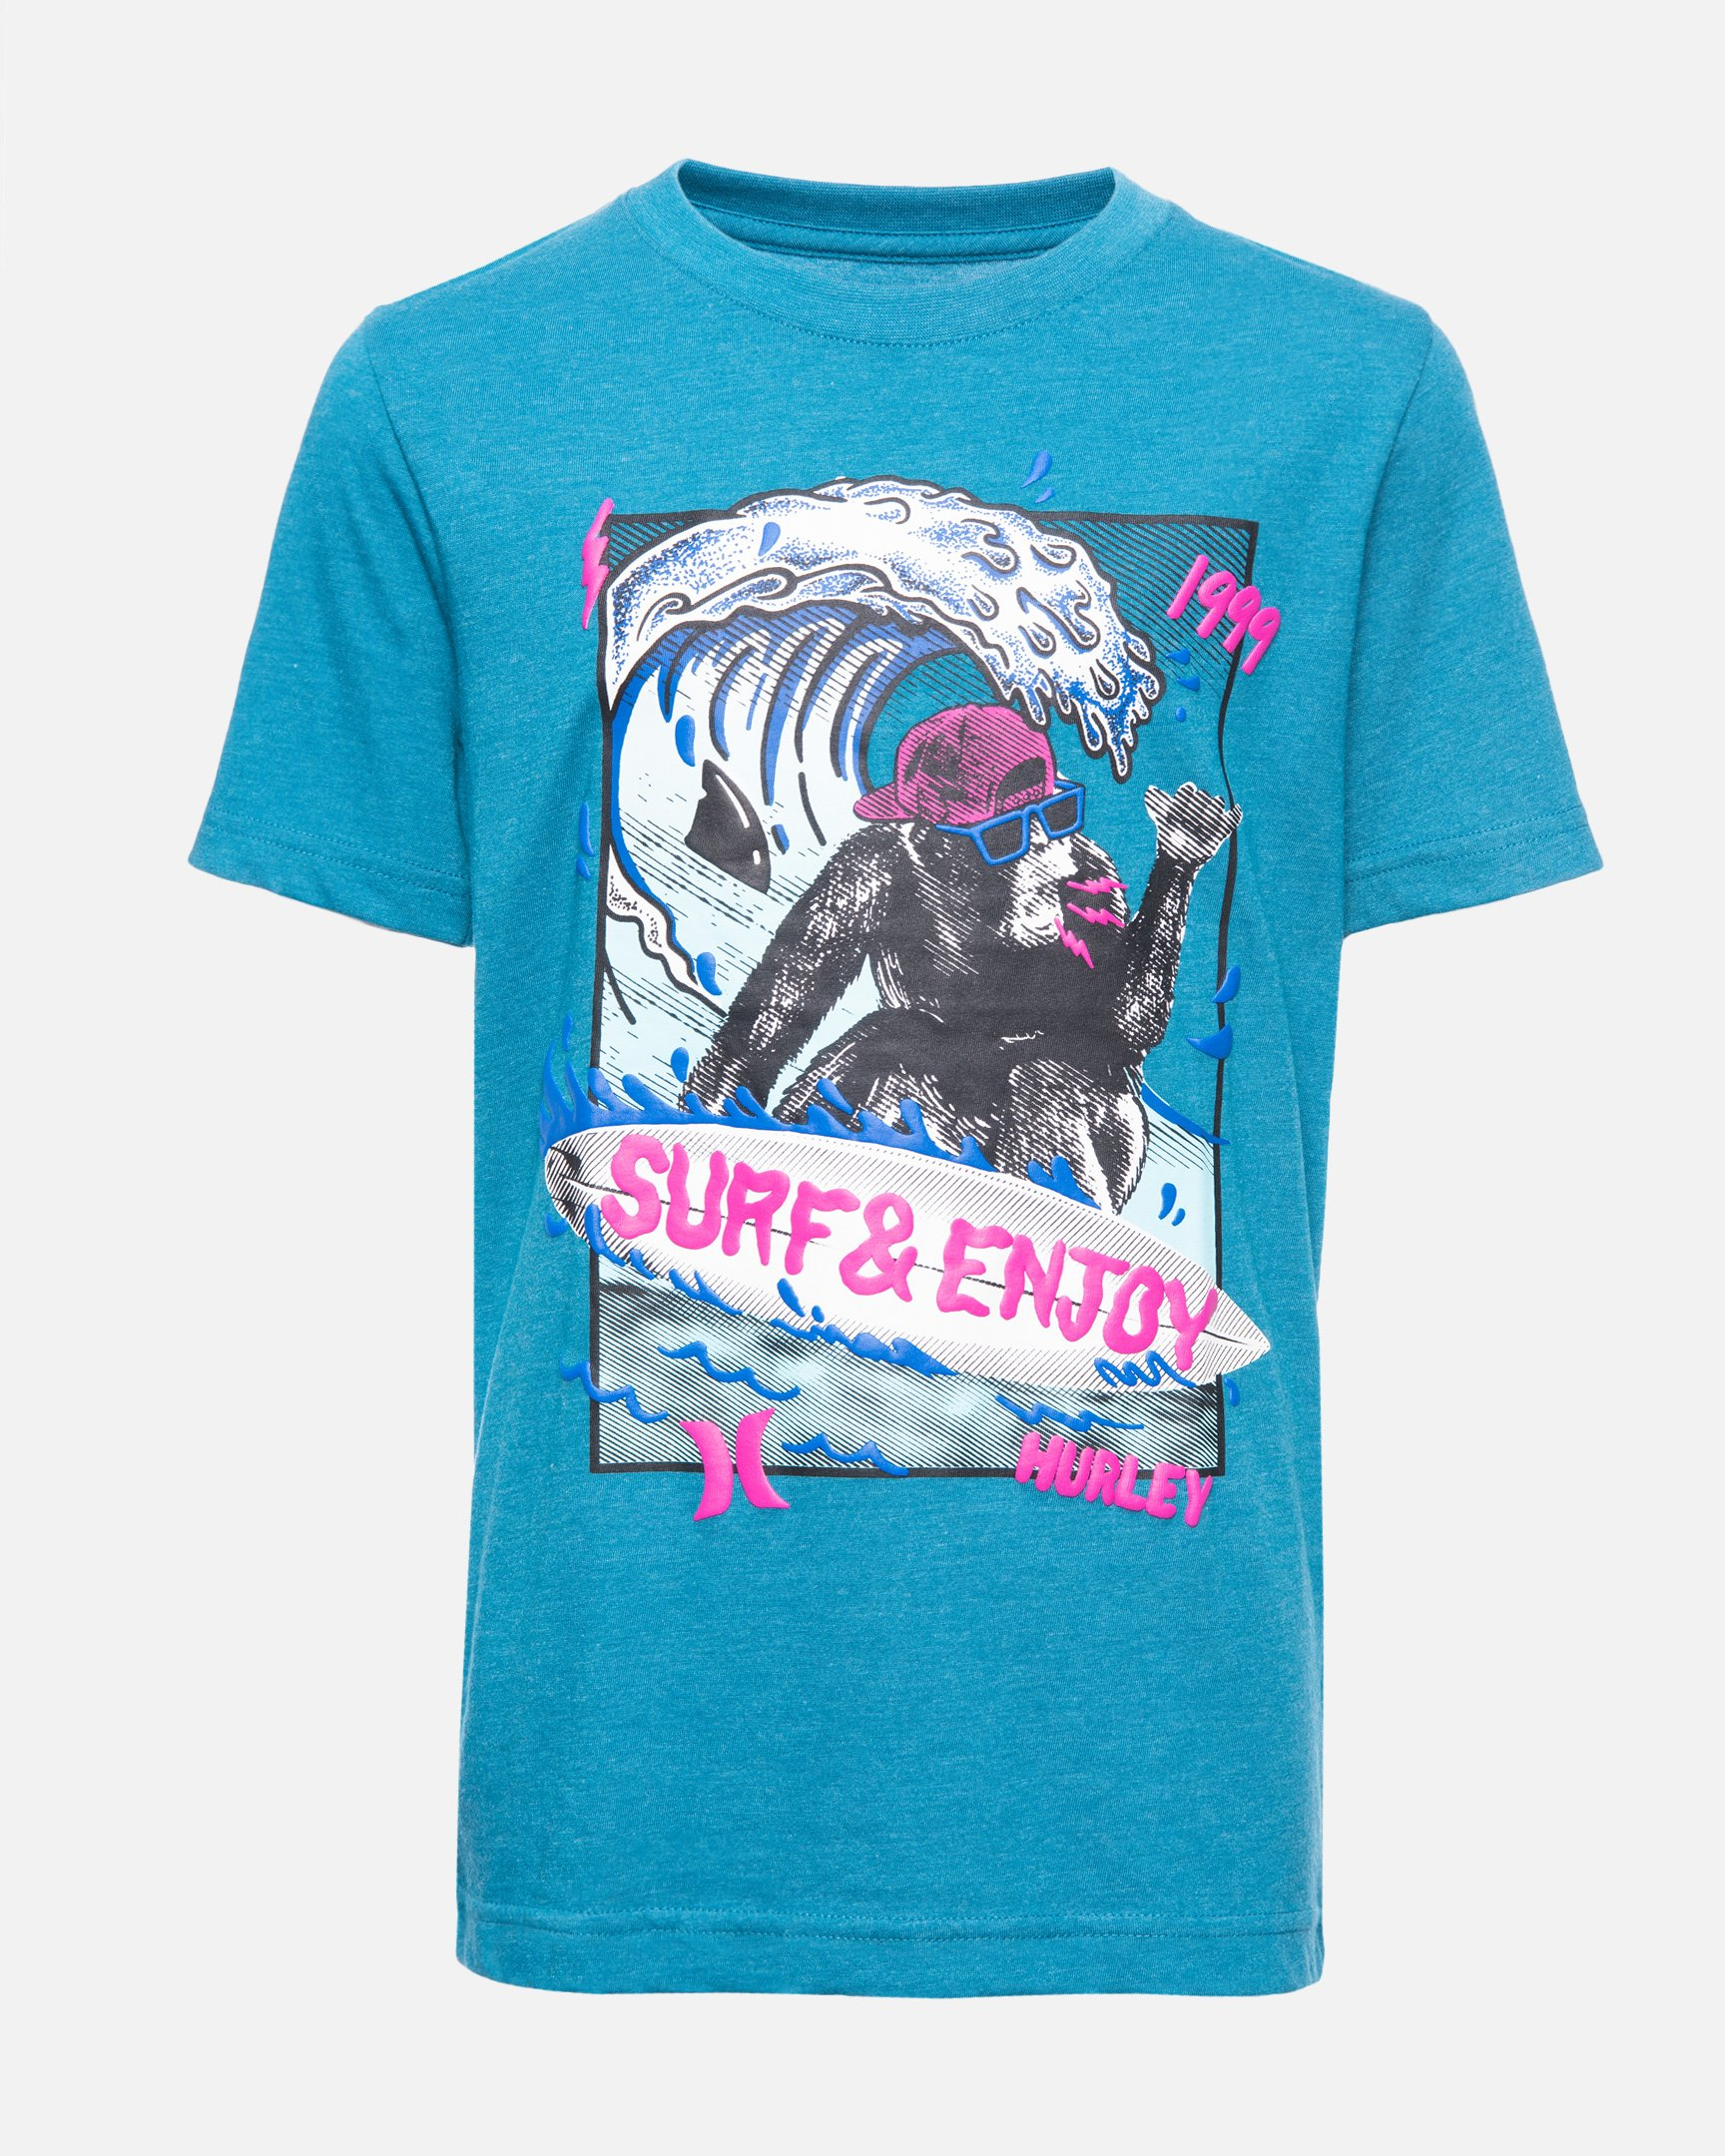 Boys' Surfin Chimp T-Shirt in Green Abyss Heather, Size Large